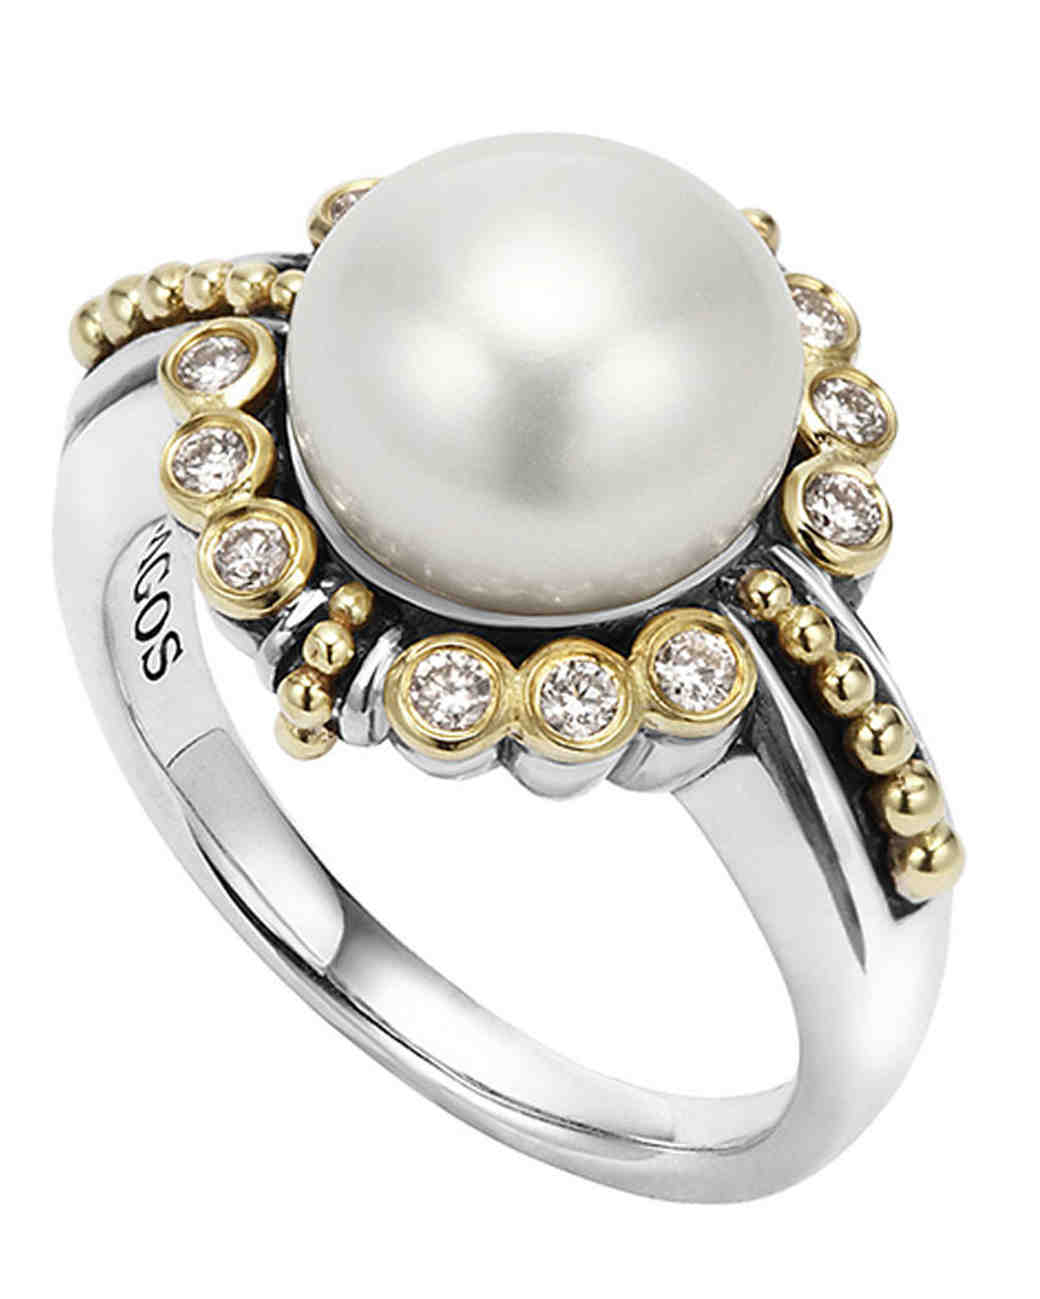 classic prong four own setting setmain ring diamond build in engagement white your gold rings solitaire